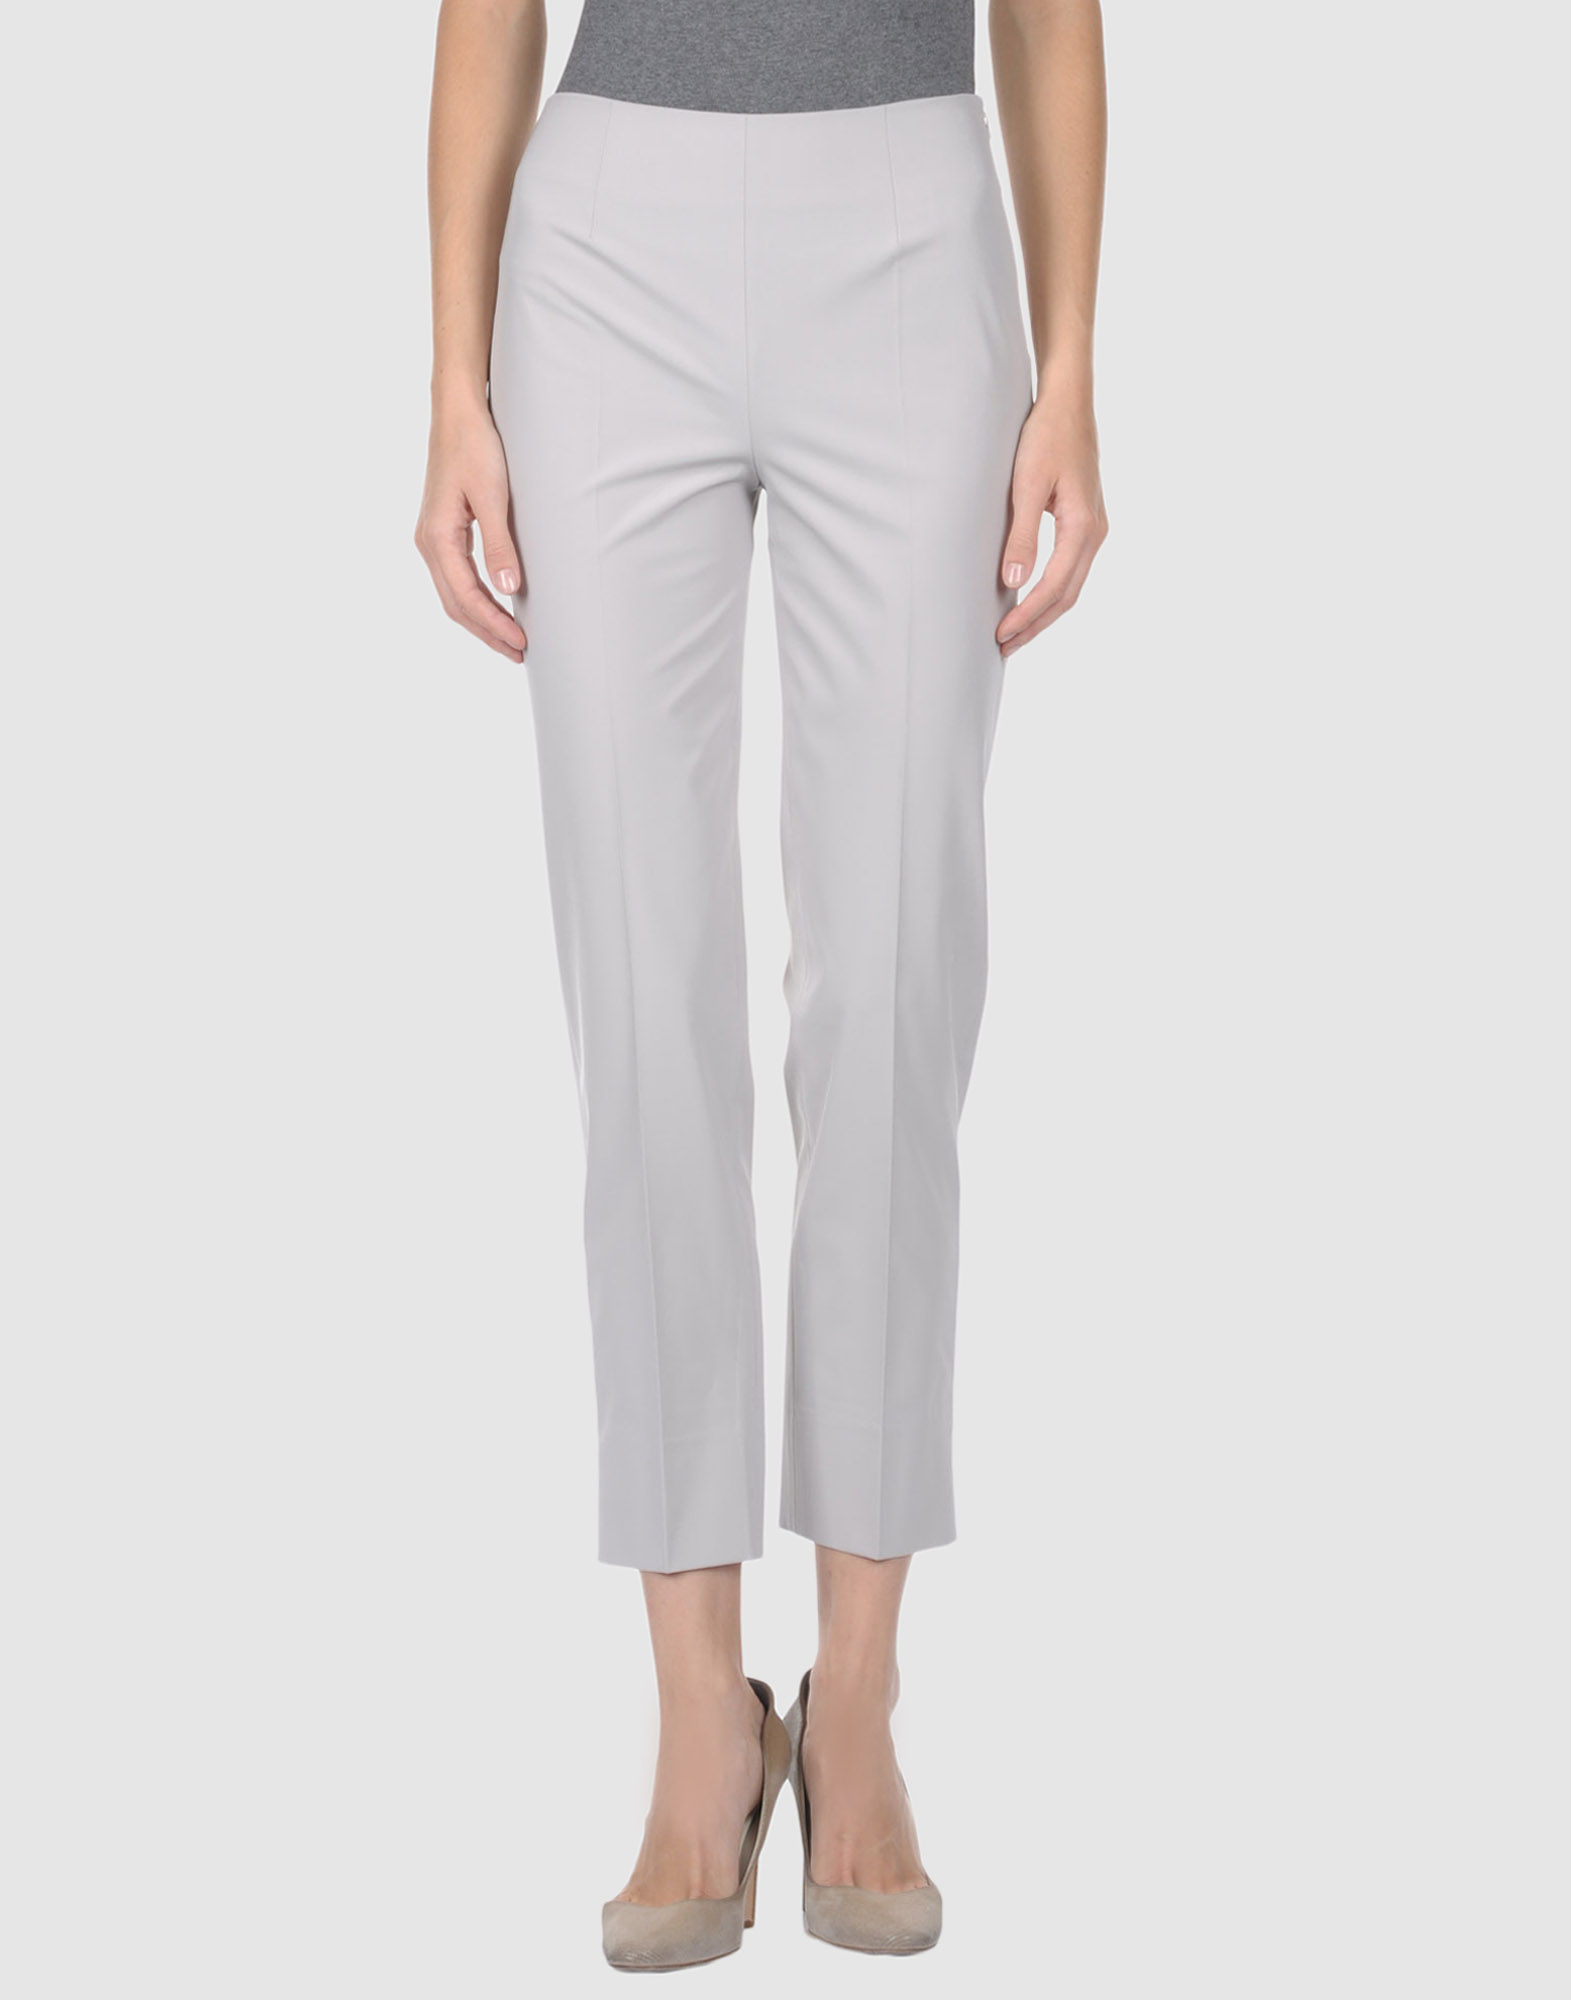 Enjoy free shipping and easy returns every day at Kohl's. Find great deals on Womens Grey Pants at Kohl's today!